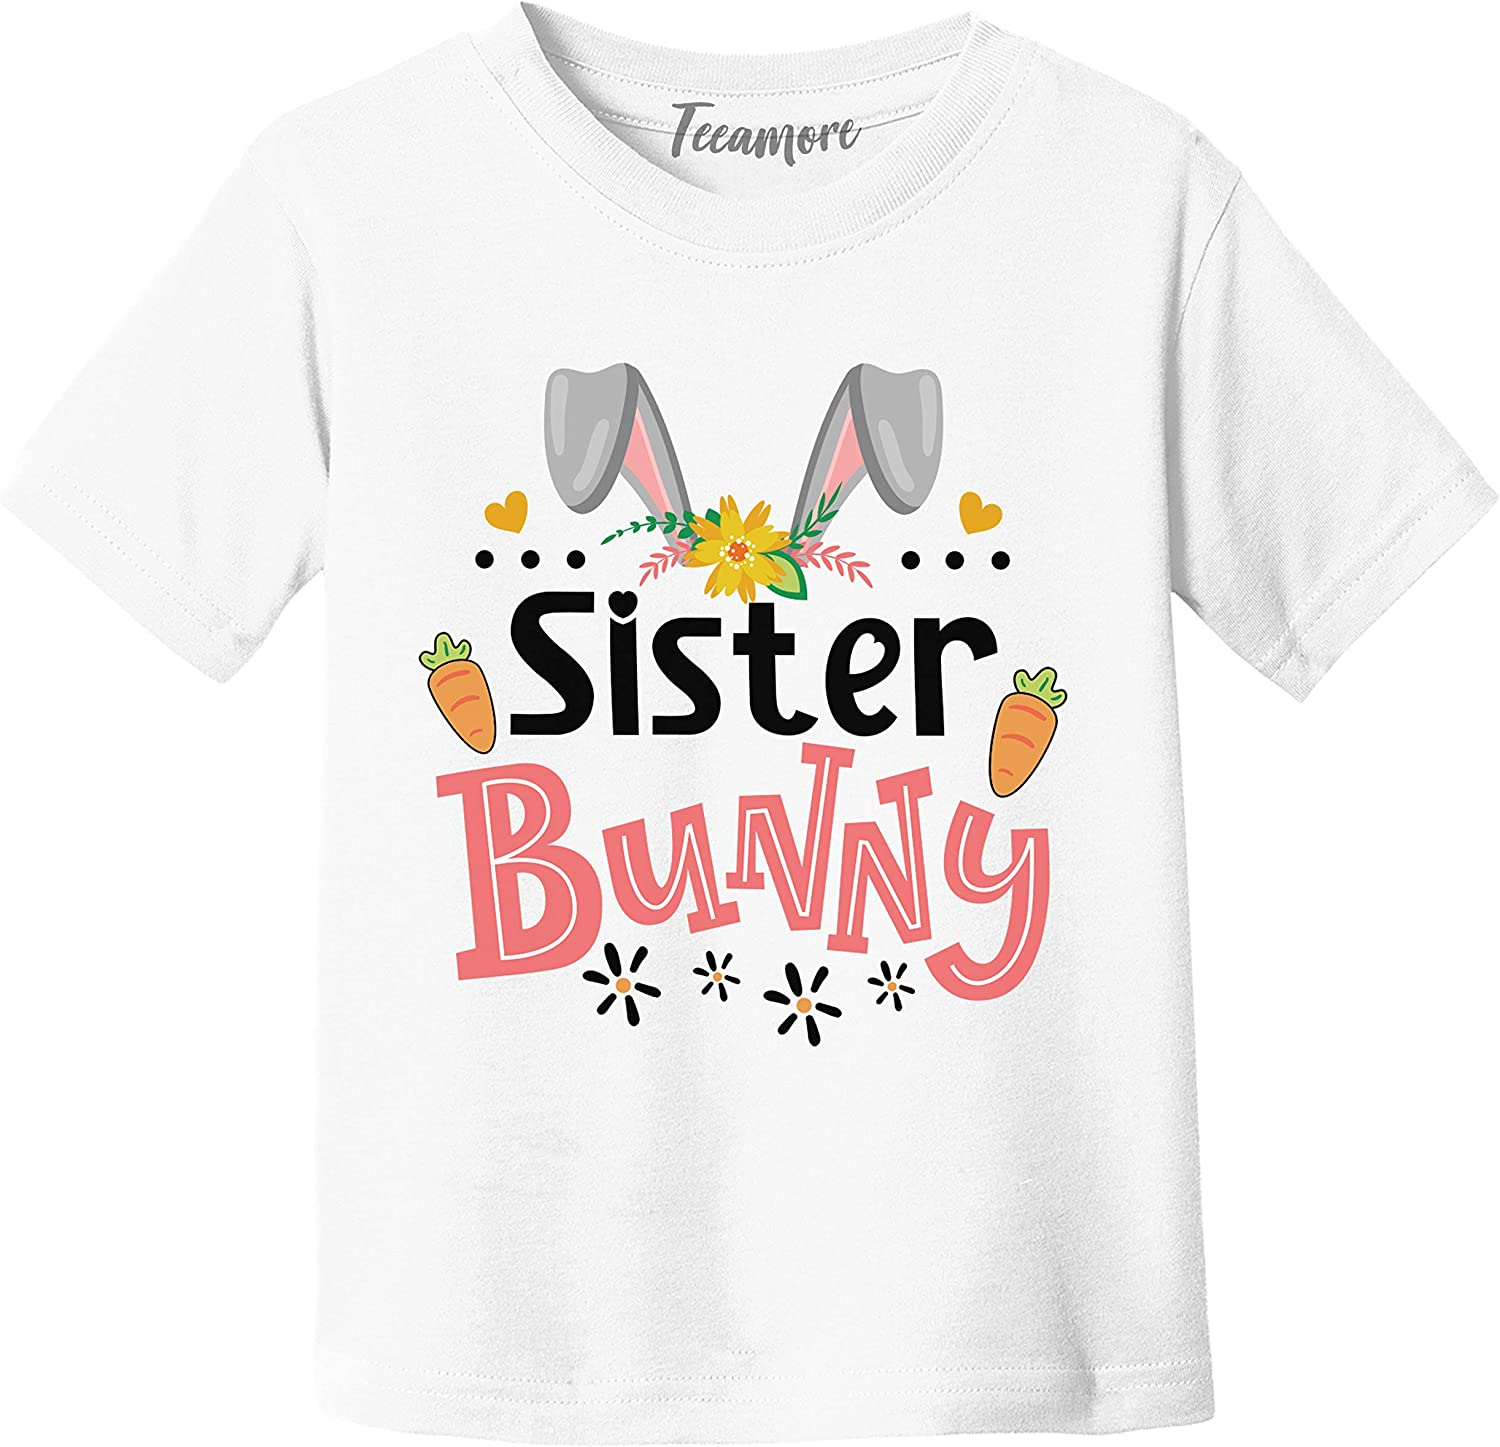 Sister Bunny Shirt Easter Day Matching Family Bunny Tee Youth Girl T-Shirt Gift